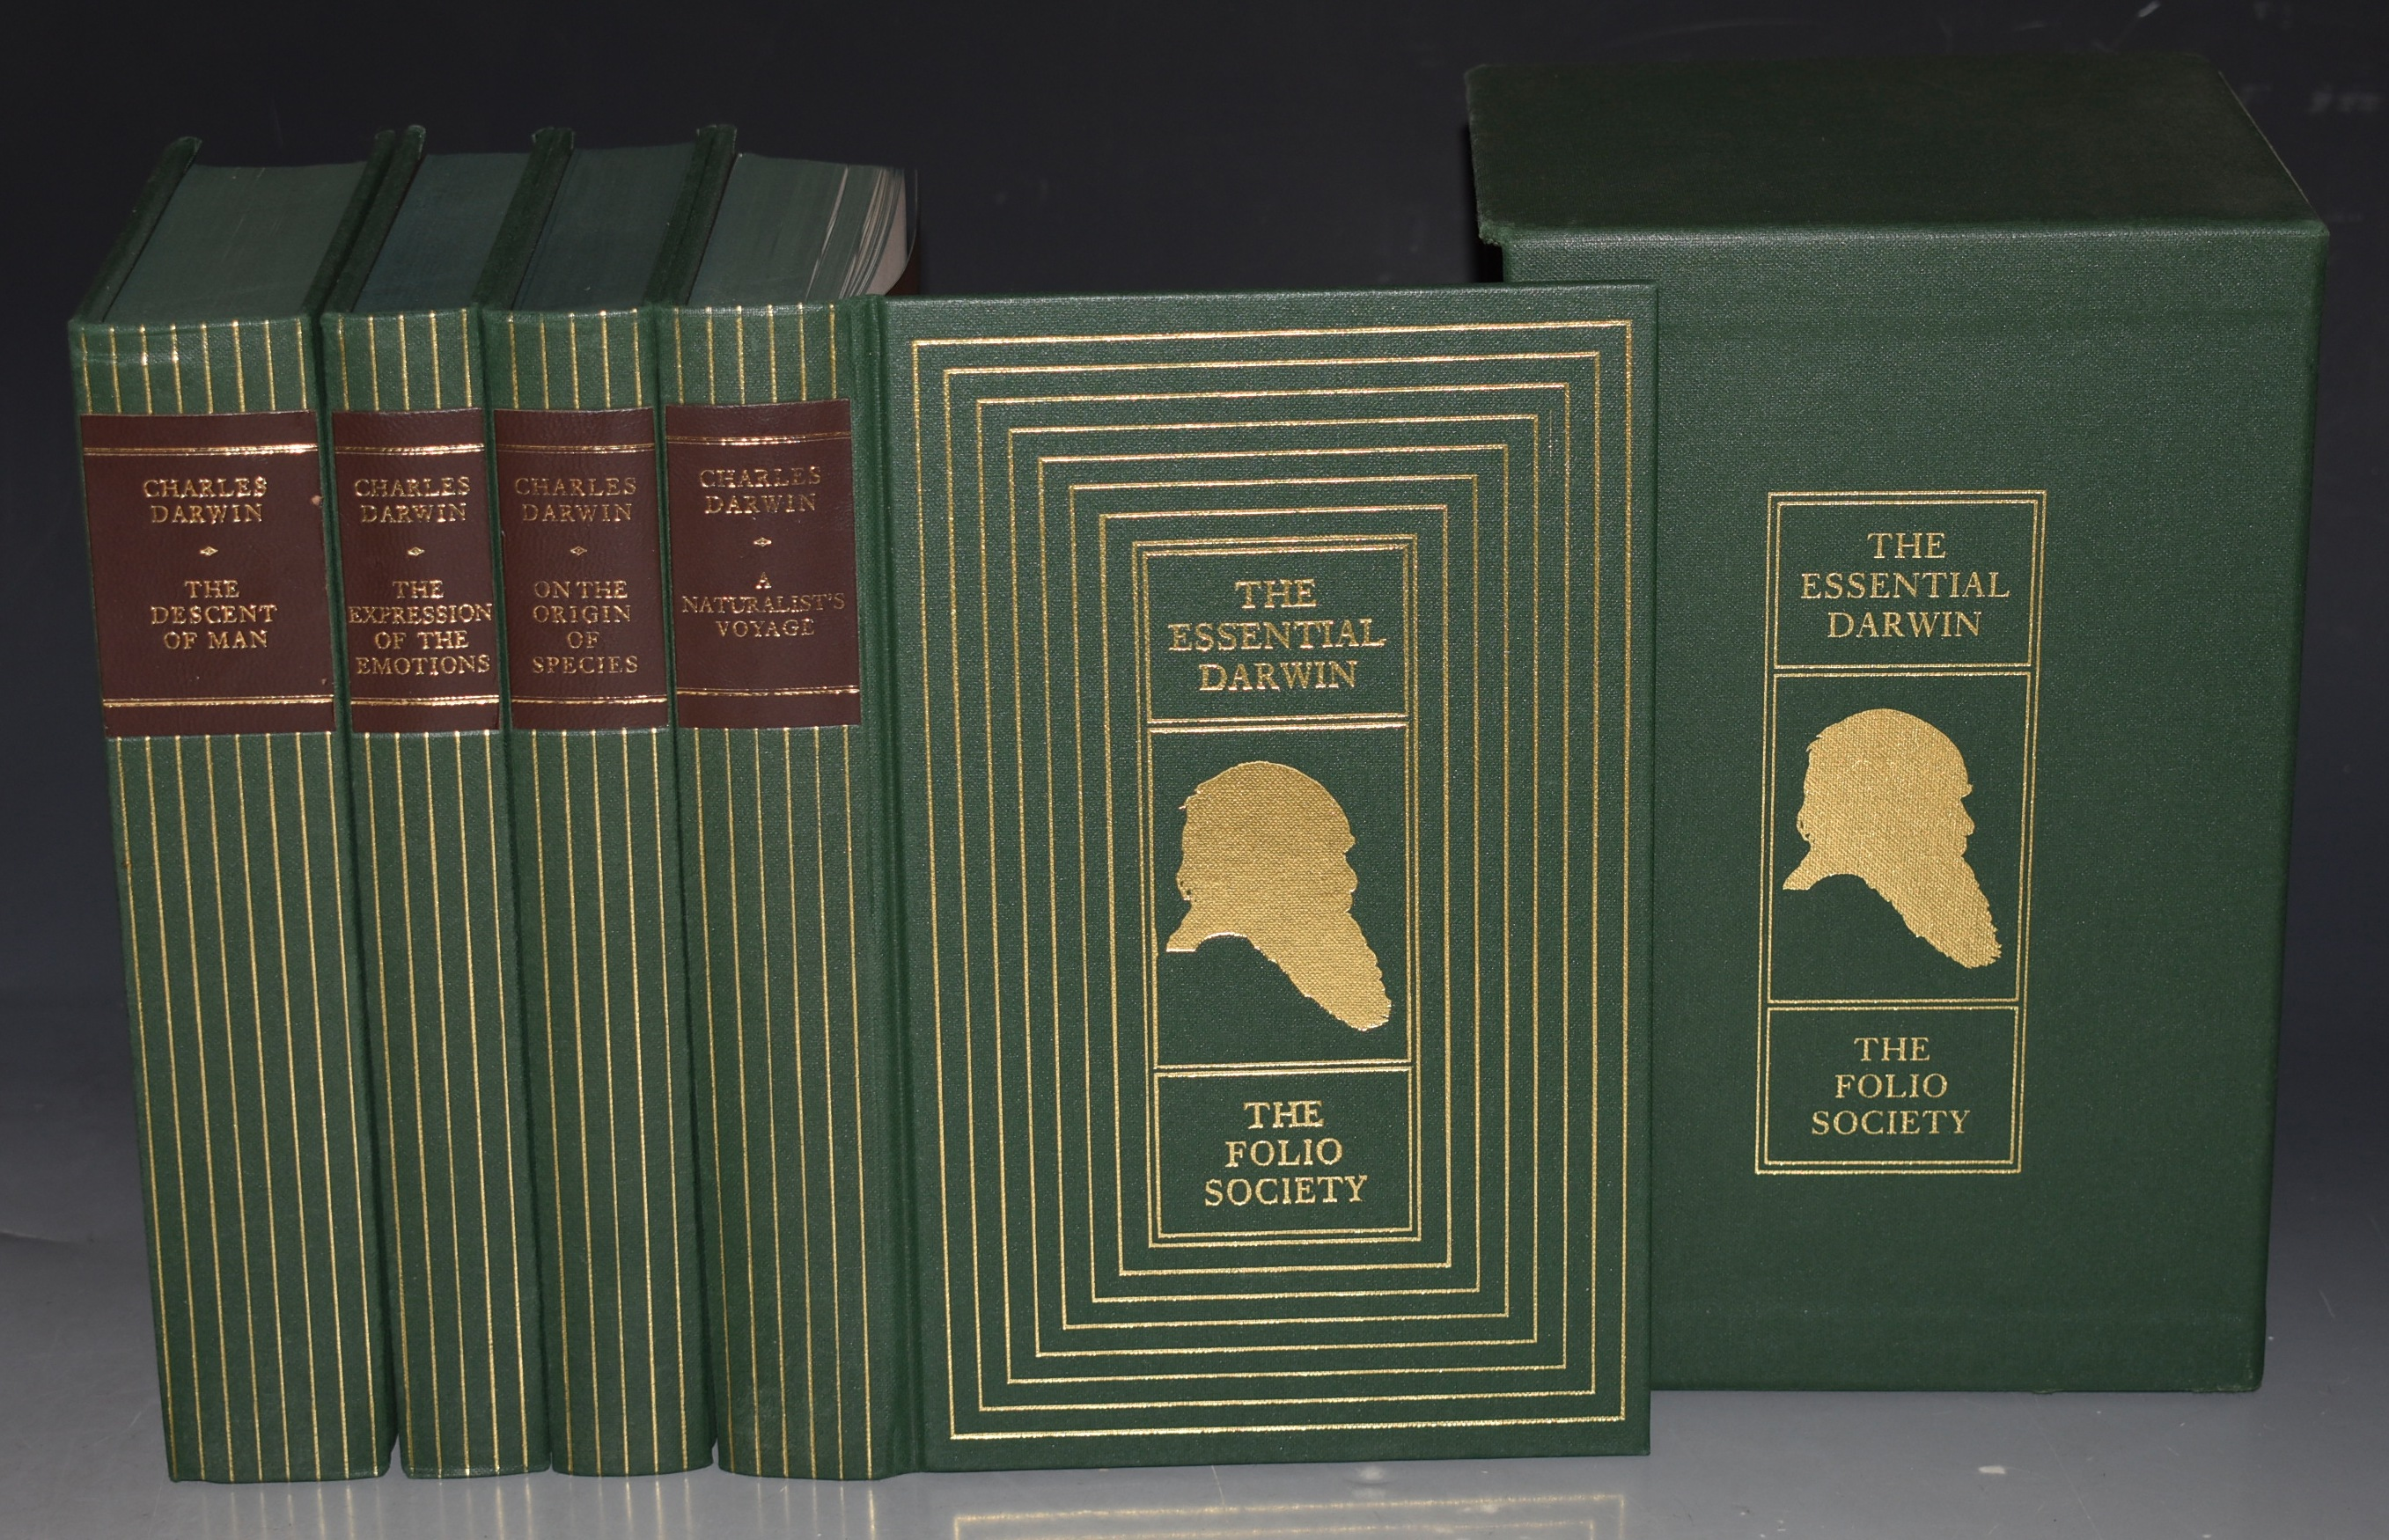 Image for The Essential Darwin. Slipcase containing On the Origin of Species, The Descent of Man, A Naturalist's Voyage, The Expression of the Emotions.